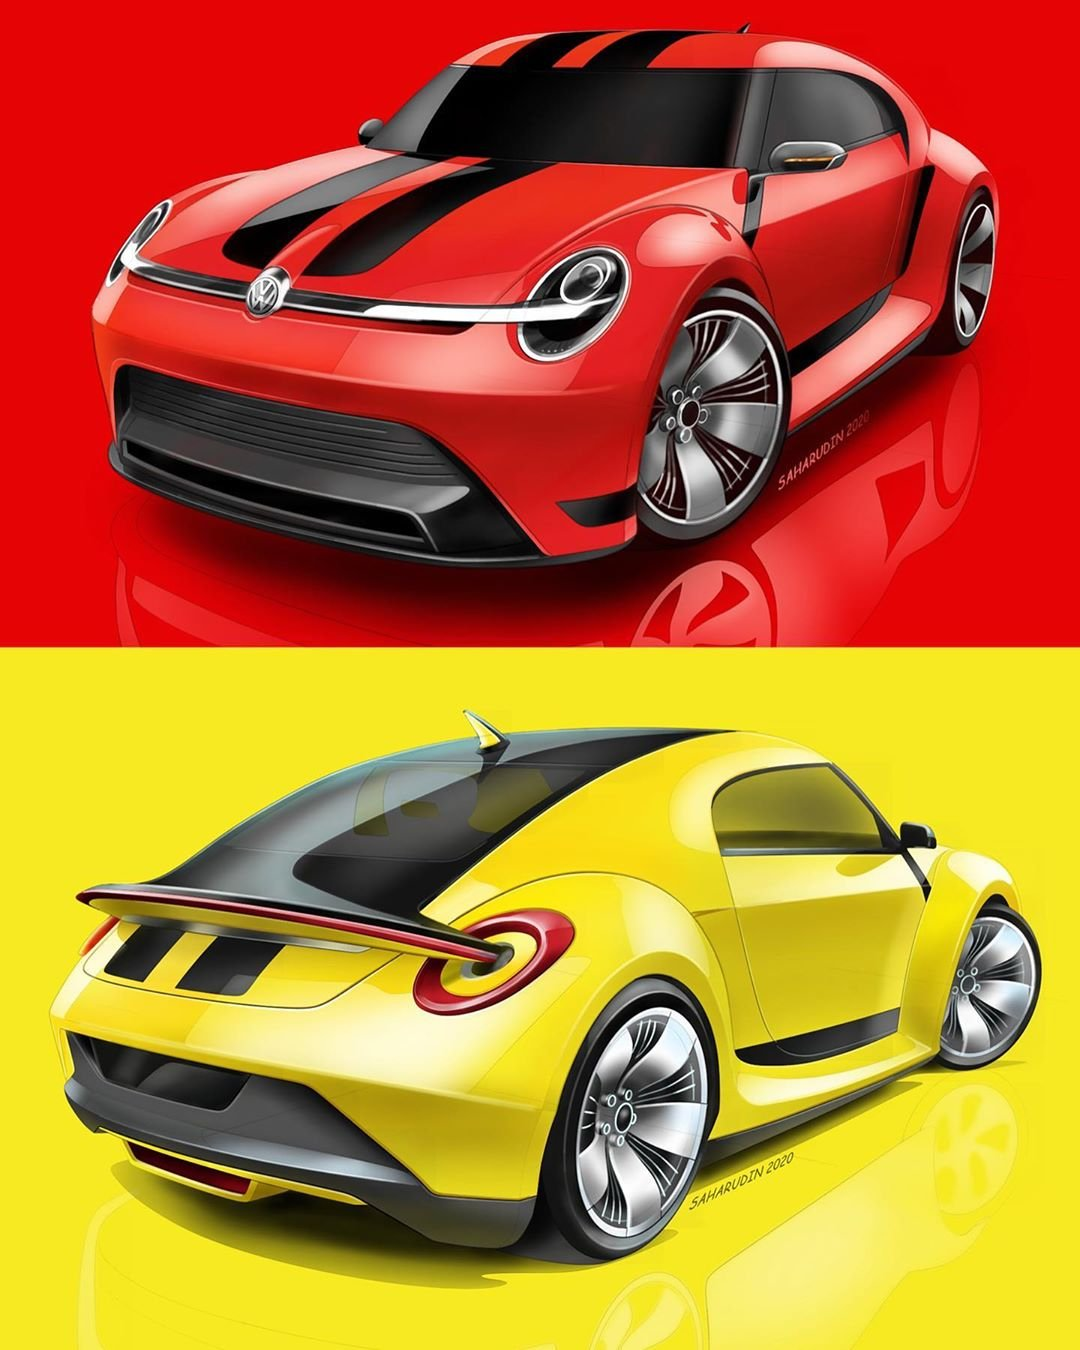 vw-beetle-id-concept-is-a-classic-turned-electric_8